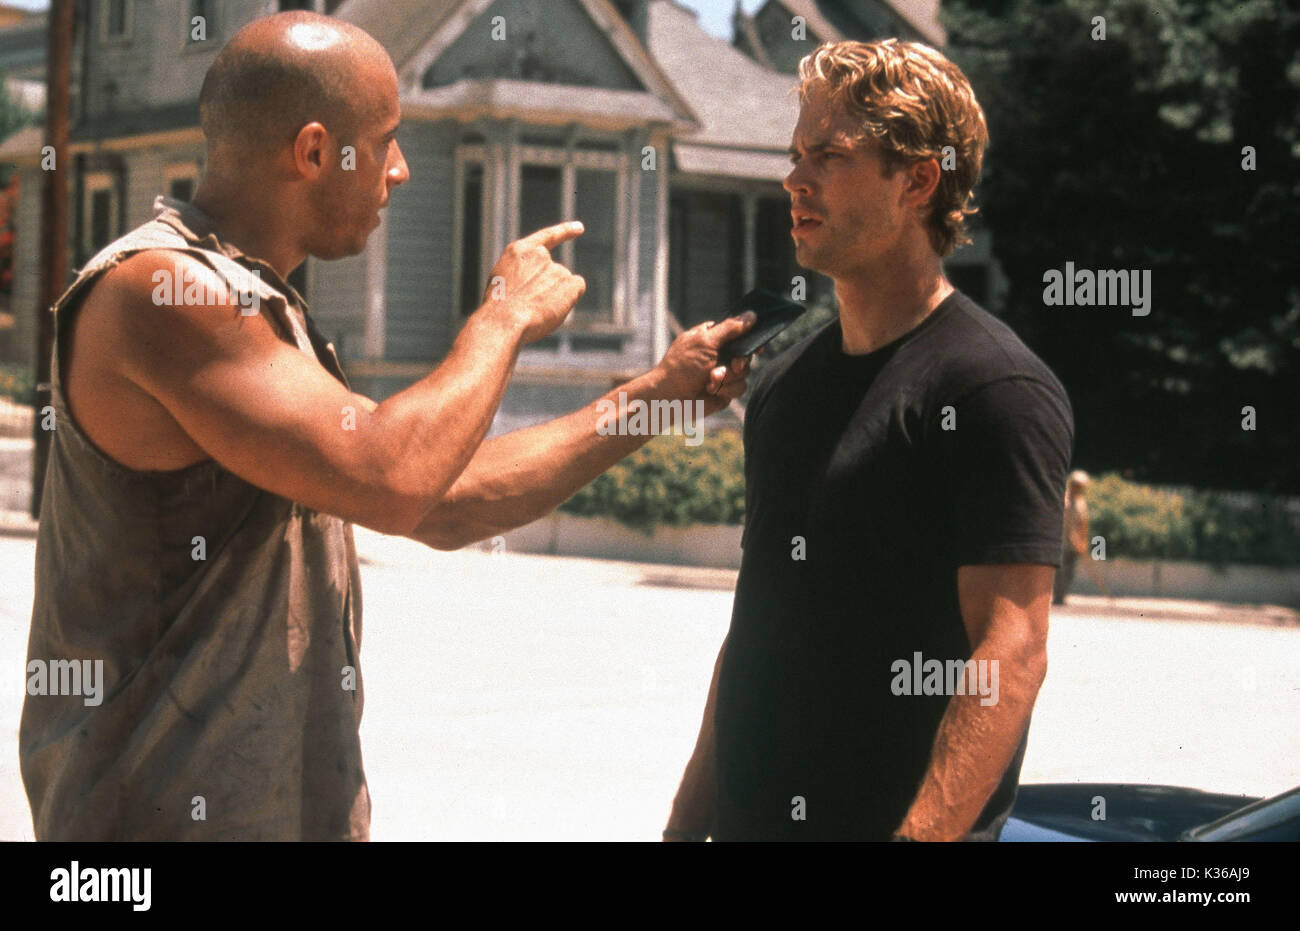 THE FAST AND THE FURIOUS PAUL WALKER AND VIN DIESEL A UNIVERSAL FILM     Date: 2001 - Stock Image